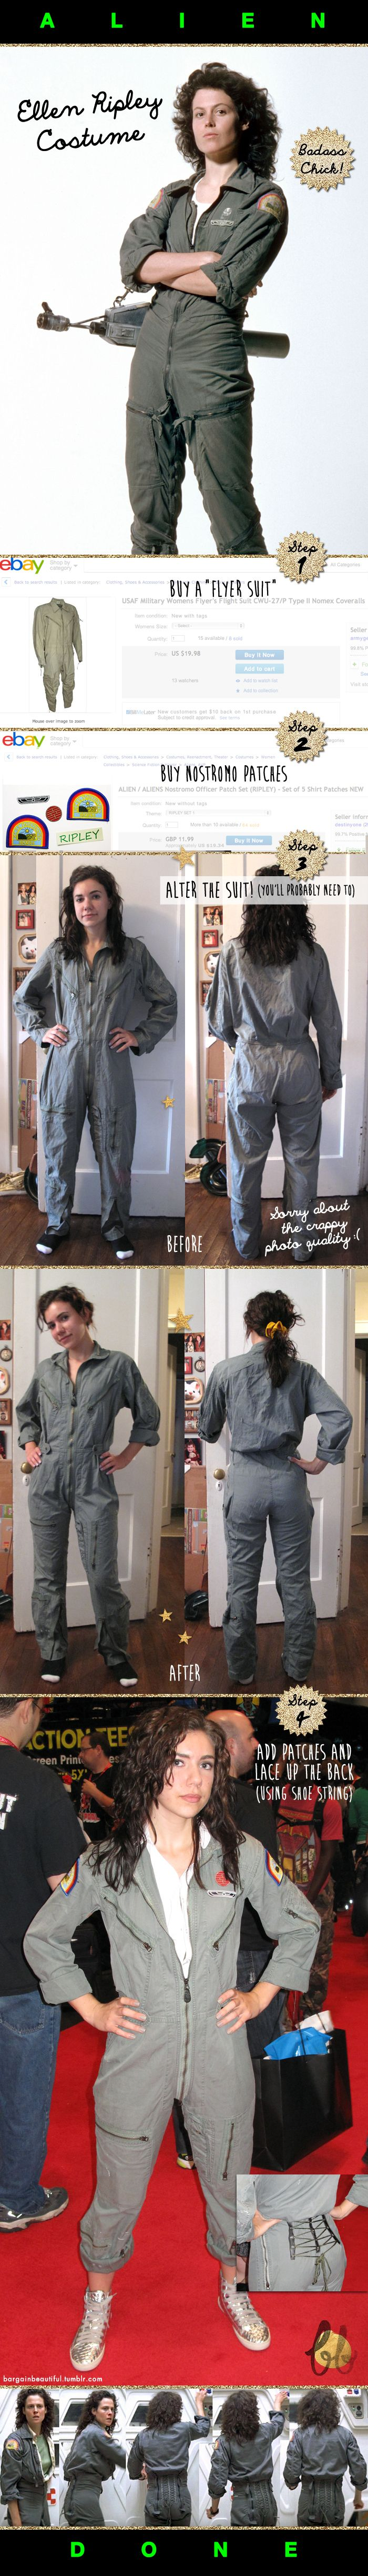 I'm impressed by this Ellen Ripley Alien Costume transformation. (Coveralls work also.)